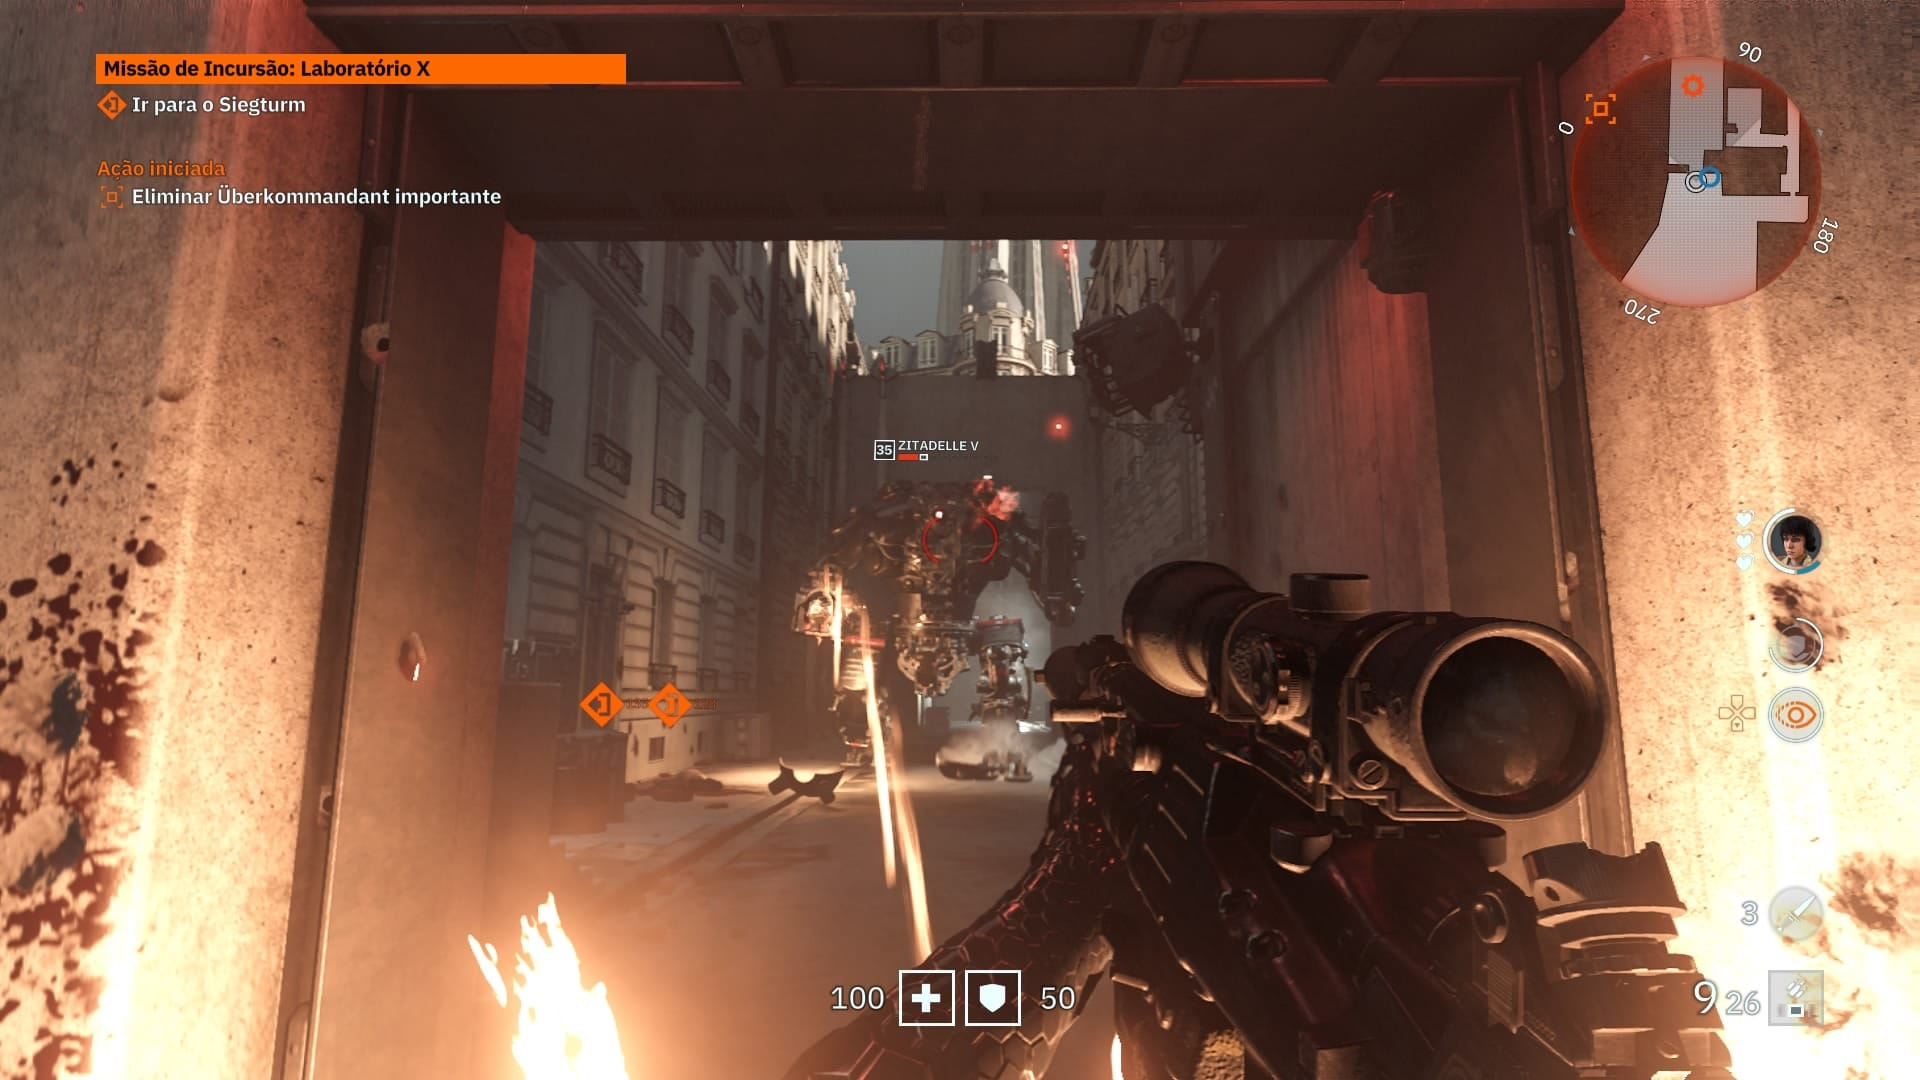 [Análise] Wolfenstein: Youngblood: Vale a Pena? 1